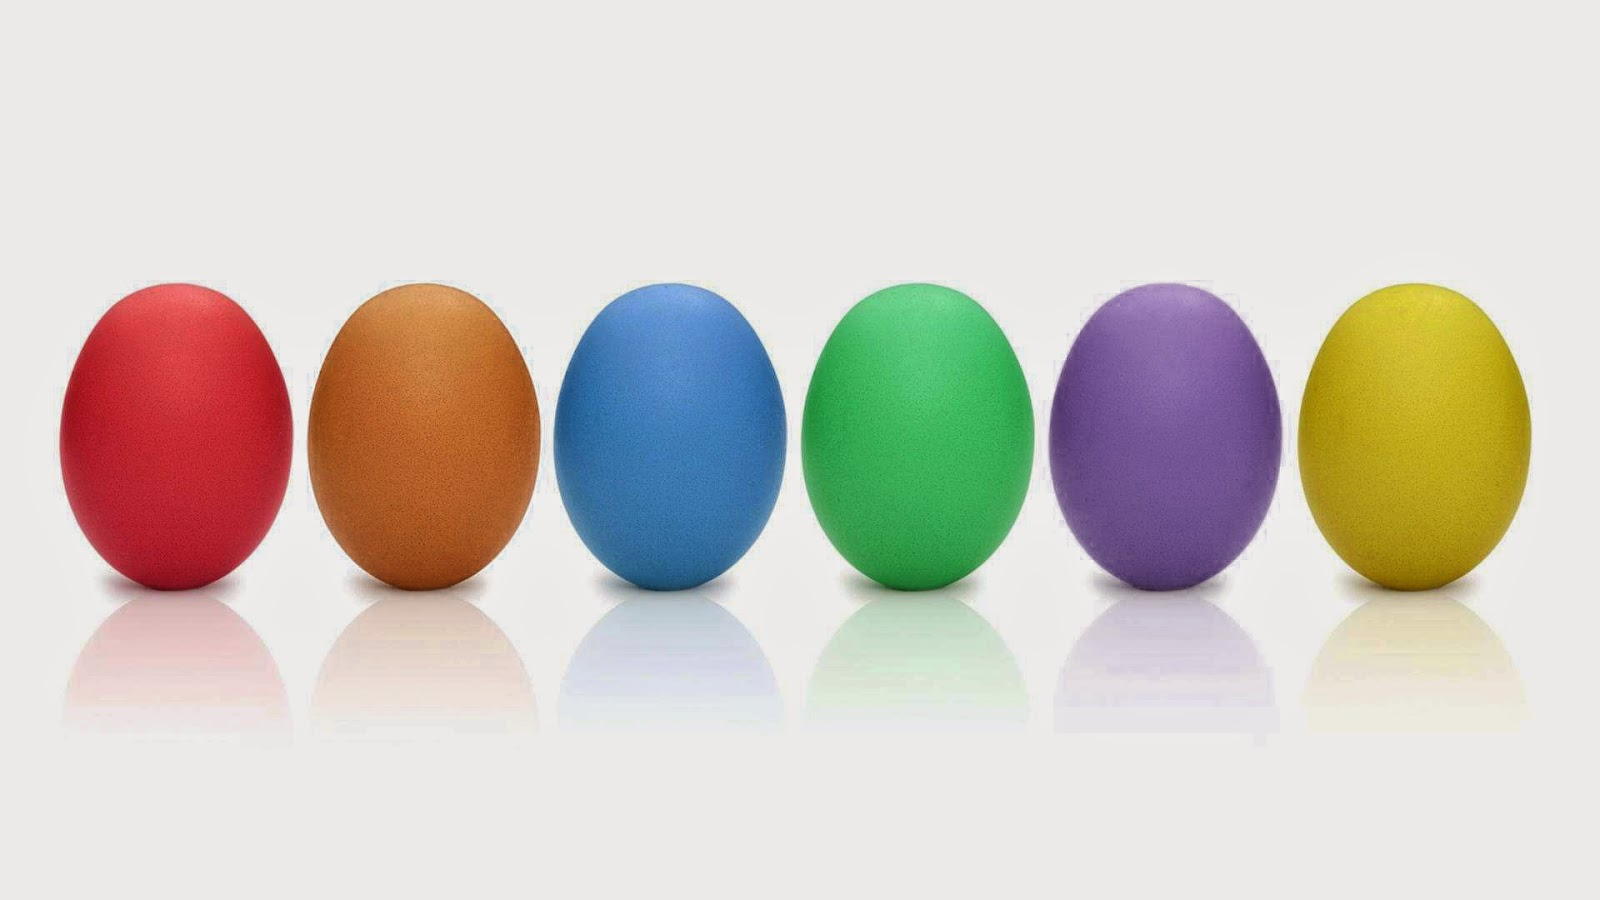 easter-family-hot-deal-at-aspire-hotel-sydney